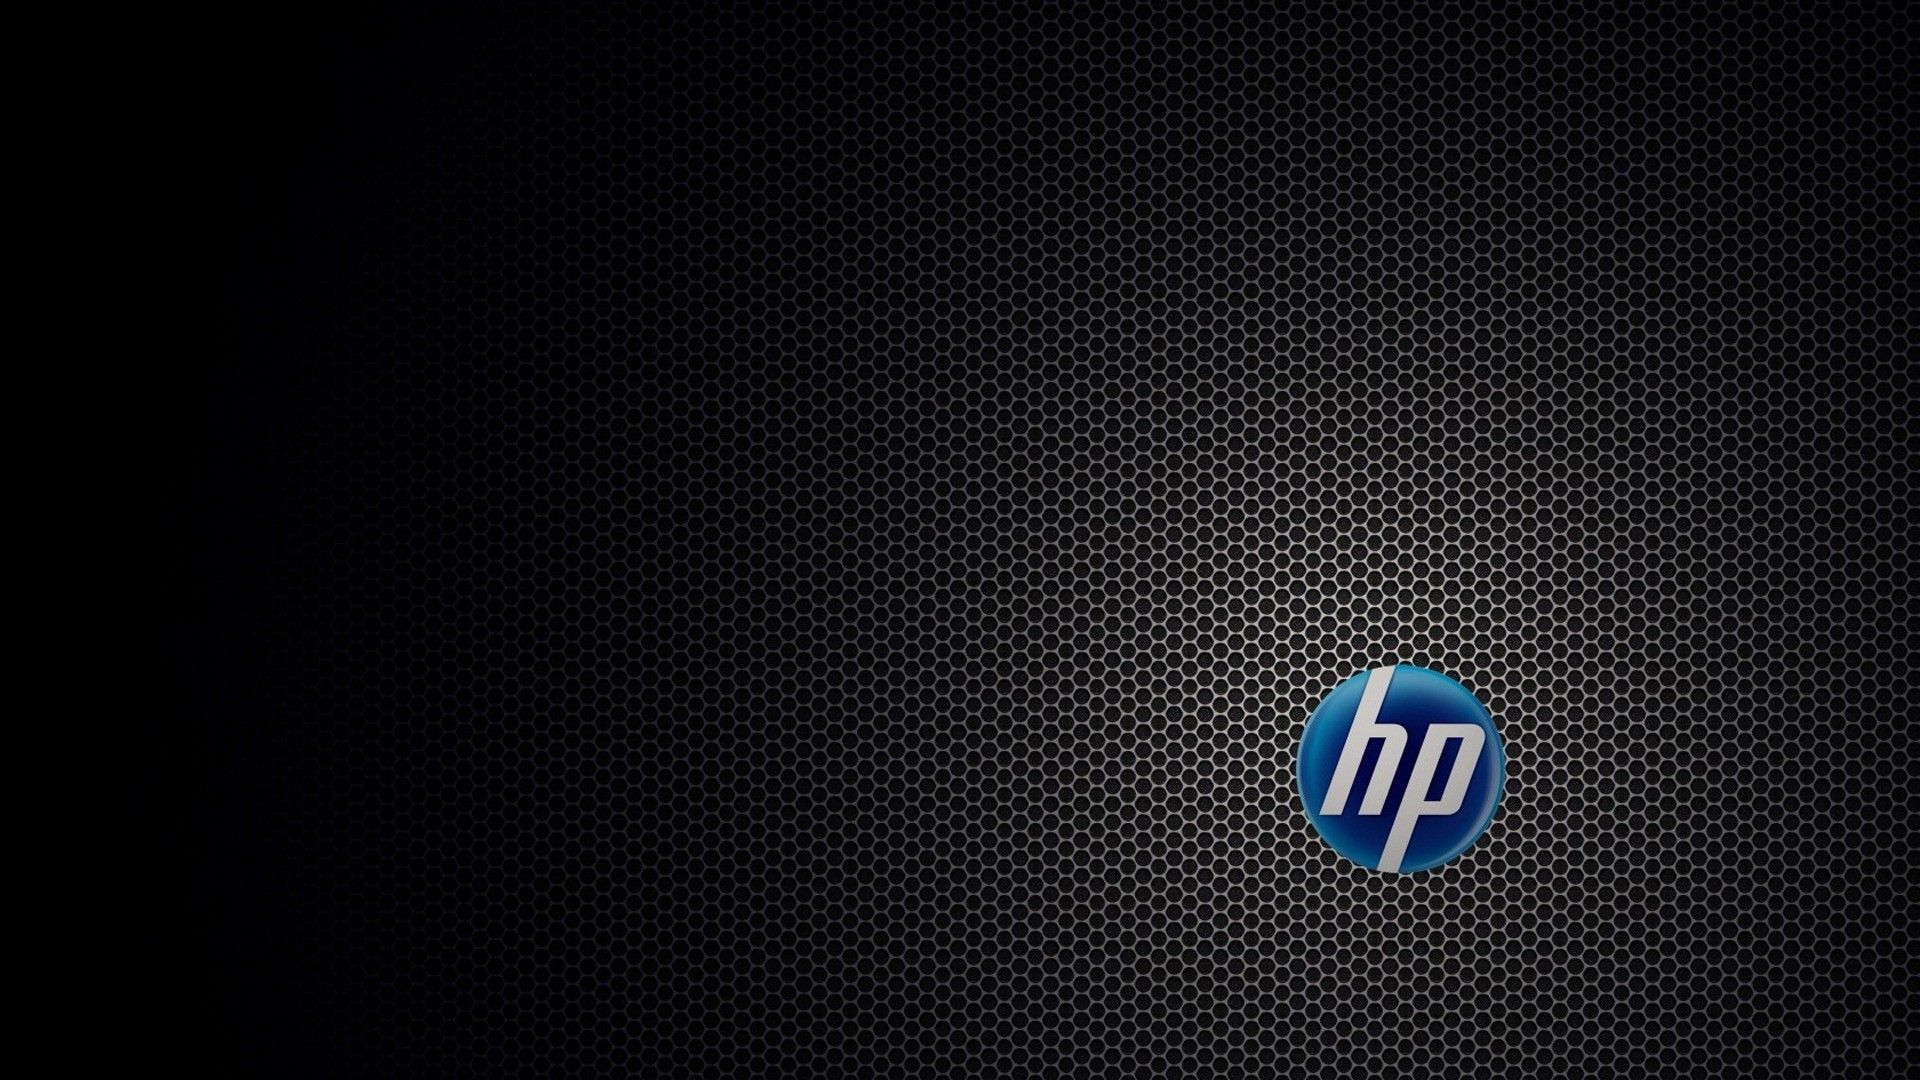 Hp 4k Wallpapers Top Free Hp 4k Backgrounds Wallpaperaccess